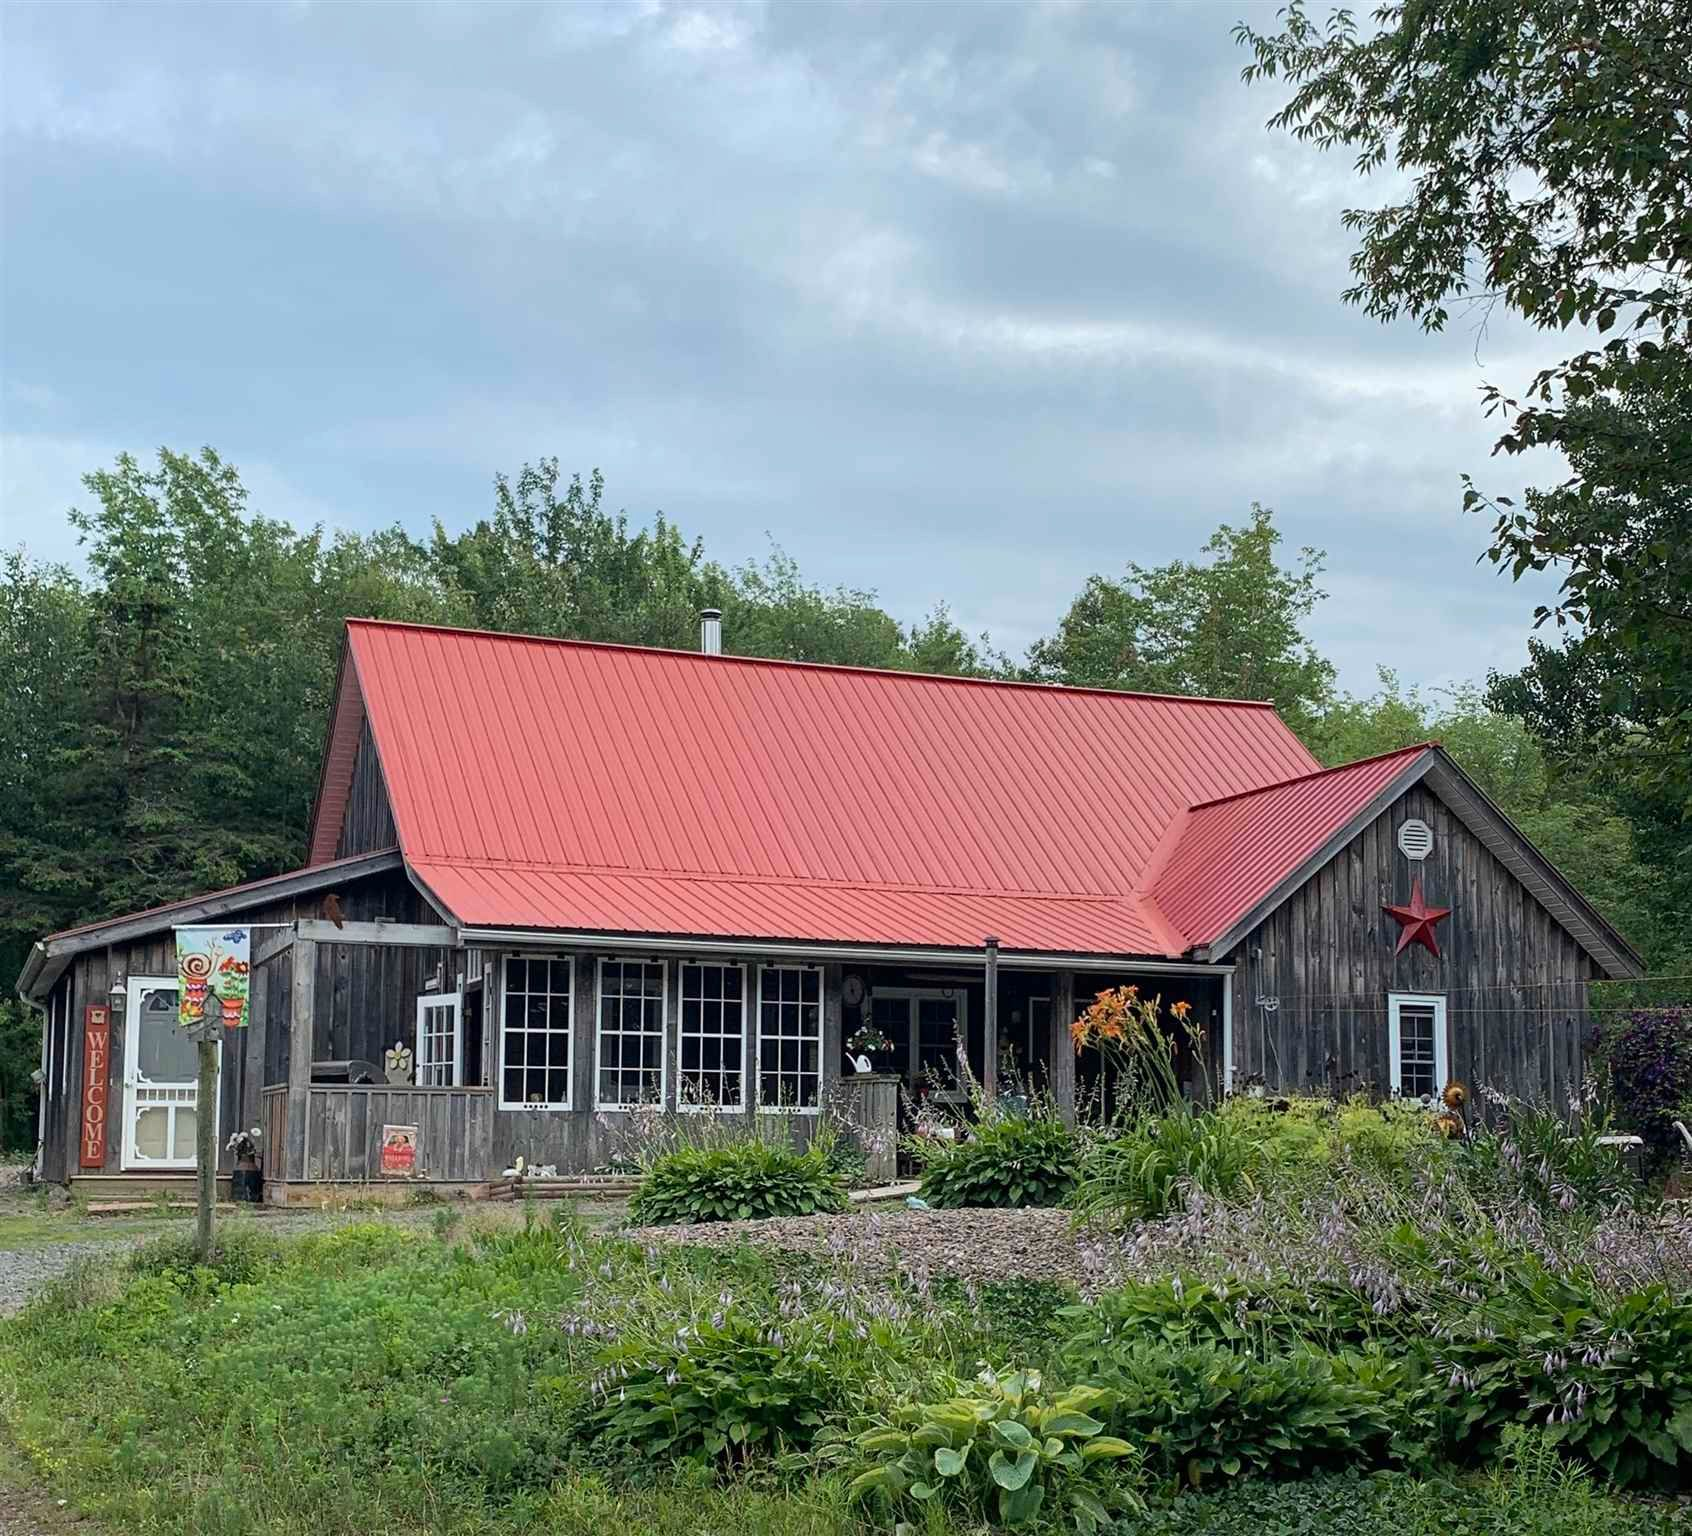 Main Photo: 3488 Brow of Mountain Road in West Black Rock: 404-Kings County Residential for sale (Annapolis Valley)  : MLS®# 202118967